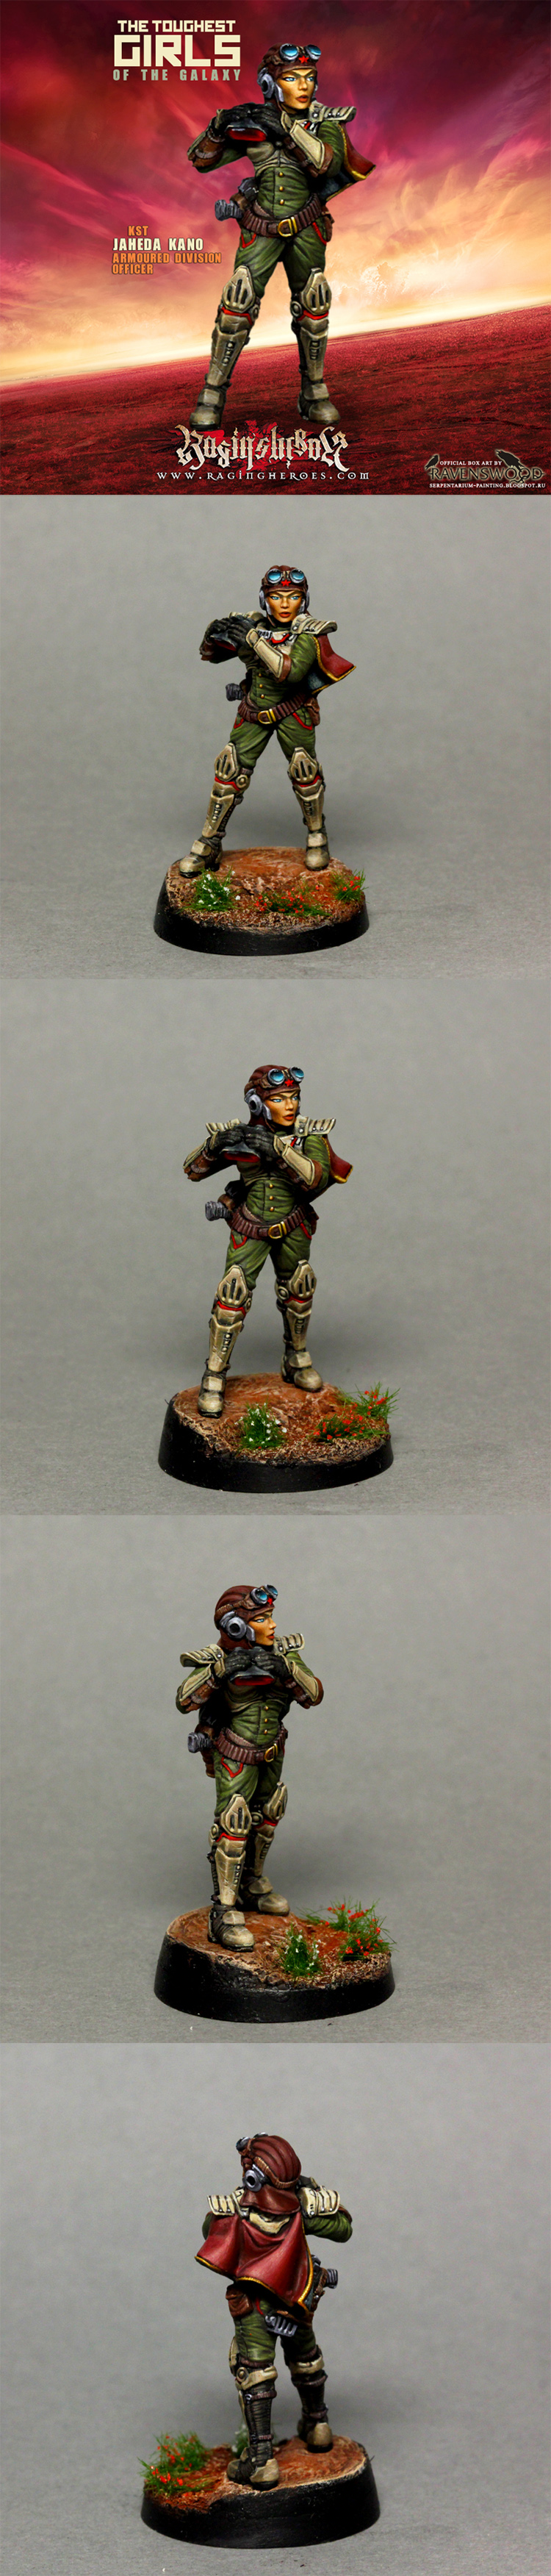 Jaheda Kano armored division officer